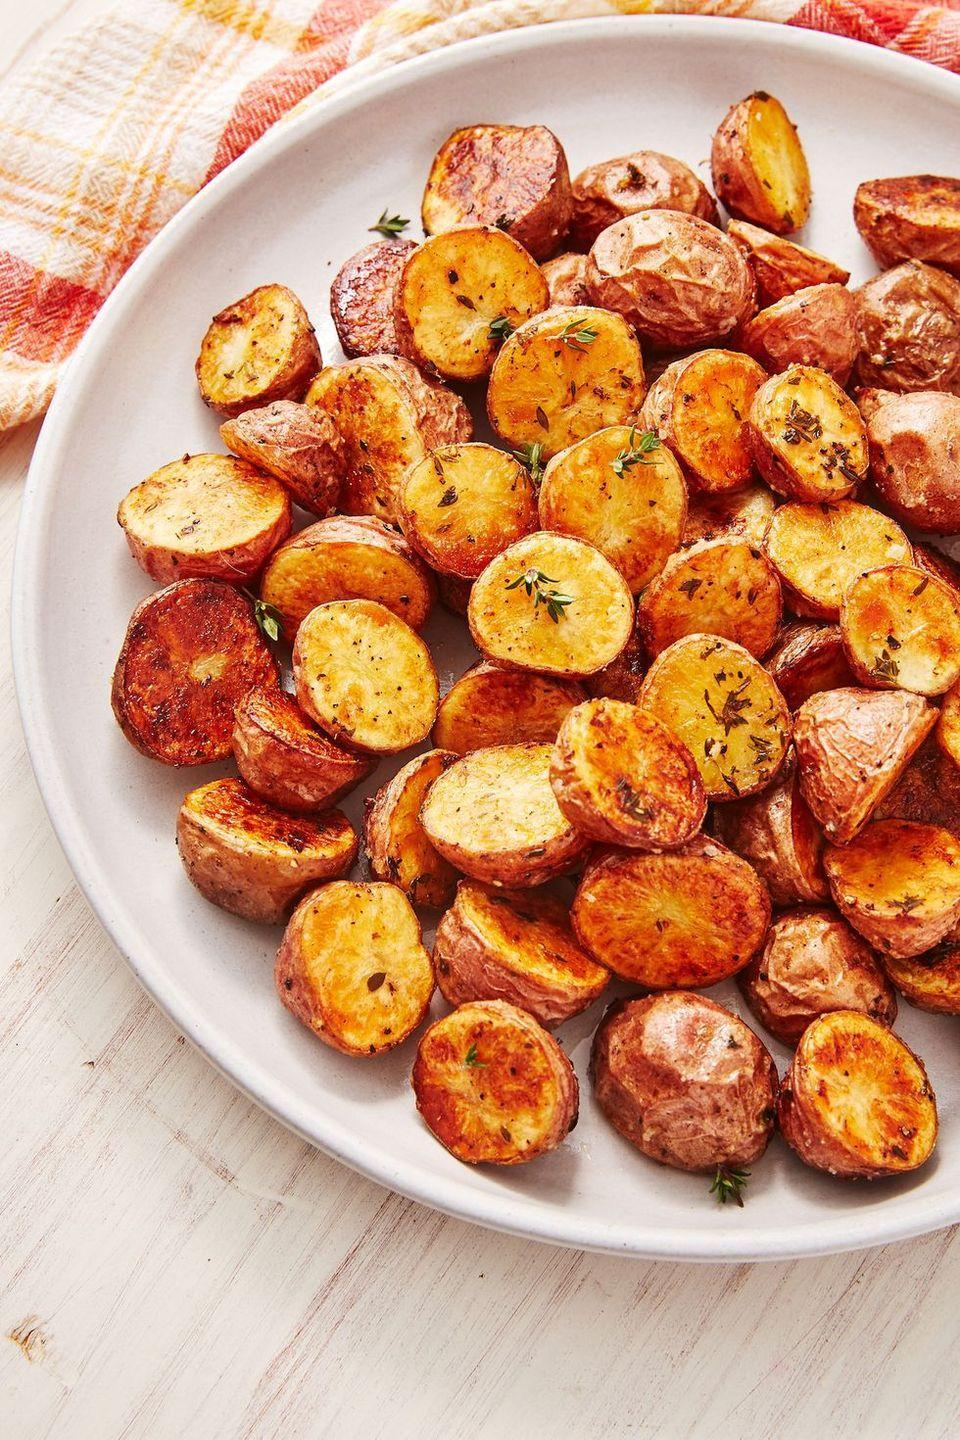 """<p>Perfectly golden and crisp <a href=""""https://www.delish.com/uk/cooking/recipes/a30438329/potato-salad/"""" rel=""""nofollow noopener"""" target=""""_blank"""" data-ylk=""""slk:potatoes"""" class=""""link rapid-noclick-resp"""">potatoes</a> are very achievable. <a href=""""https://www.delish.com/uk/food-news/a29456647/how-to-cook-roast-potatoes/"""" rel=""""nofollow noopener"""" target=""""_blank"""" data-ylk=""""slk:Roasting your potatoes"""" class=""""link rapid-noclick-resp"""">Roasting your potatoes</a> at a high temp and making sure your potatoes are cut side down are the magic tricks. It takes an extra minute to arrange all of them but the results are very much well worth it. Be sure to not overcrowd your pan and roast in batches if necessary!</p><p>Get the <a href=""""https://www.delish.com/uk/cooking/recipes/a32681763/roasted-red-potatoes-recipe/"""" rel=""""nofollow noopener"""" target=""""_blank"""" data-ylk=""""slk:Roasted Red Potatoes"""" class=""""link rapid-noclick-resp"""">Roasted Red Potatoes</a> recipe.</p>"""